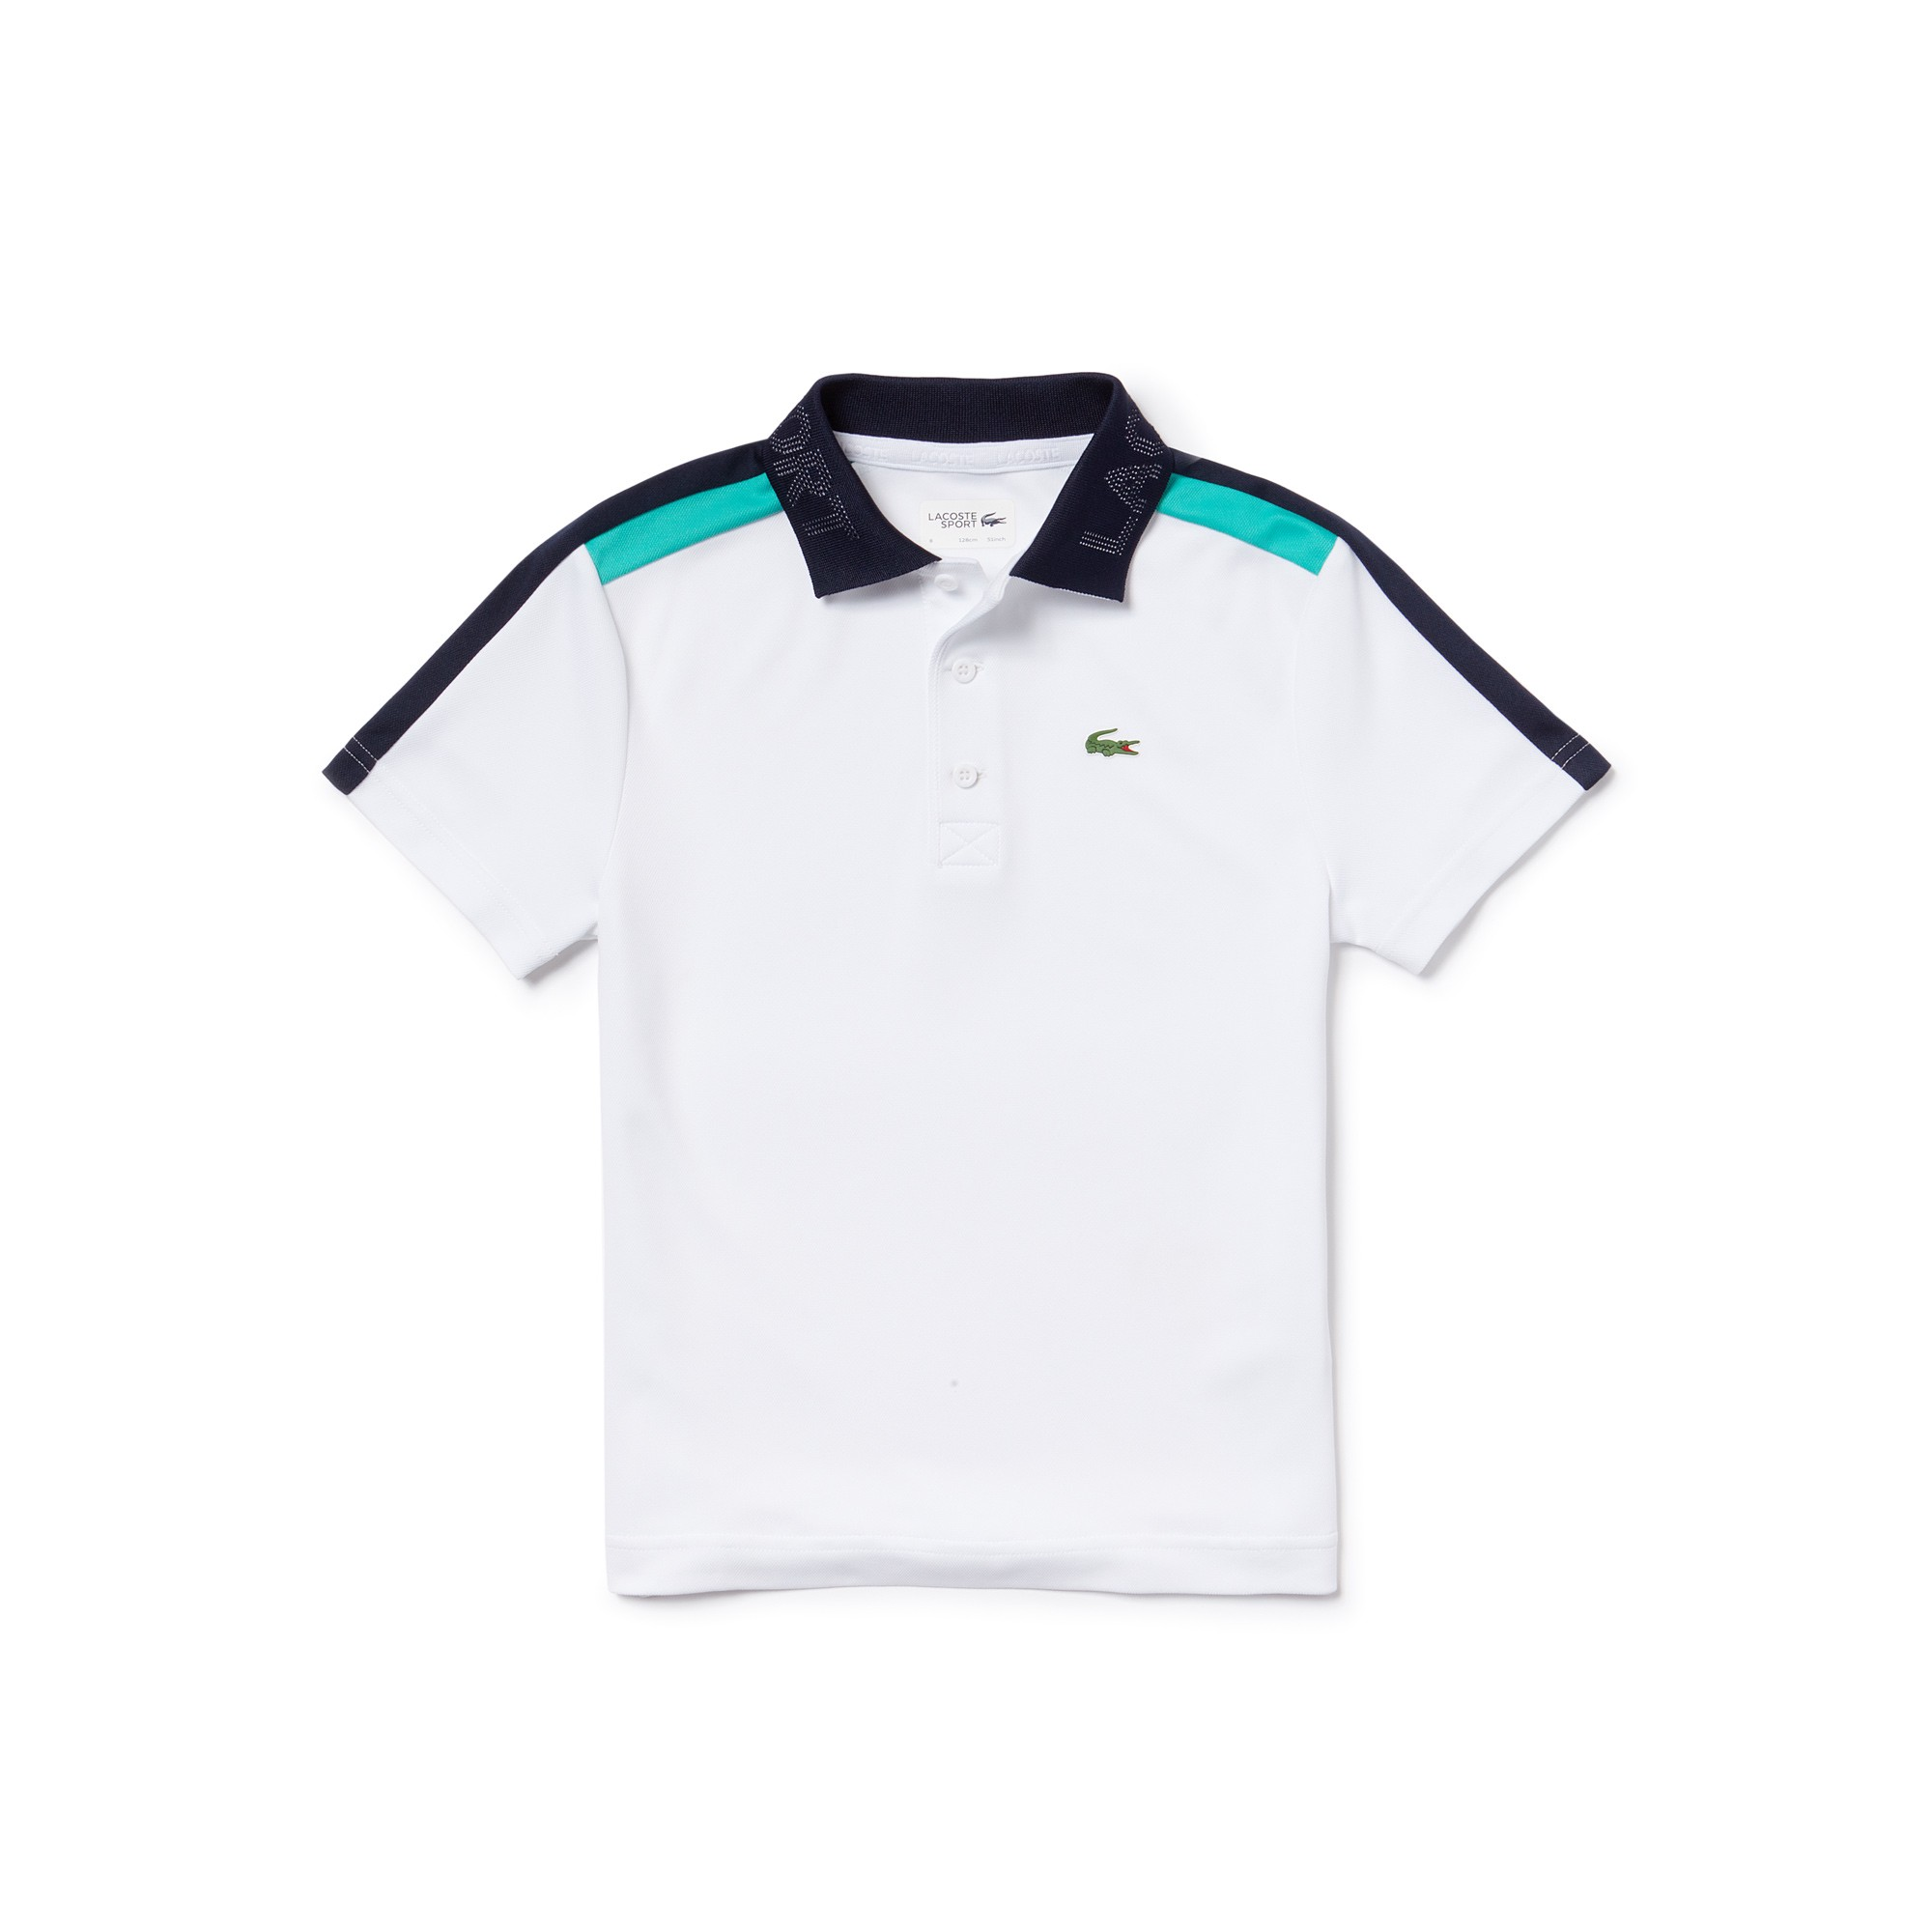 00020e5eda24 Lacoste Boys  Sport Contrast Bands Piqué Tennis Polo - Lighthouse Red Navy  Blue- 10 Years Green